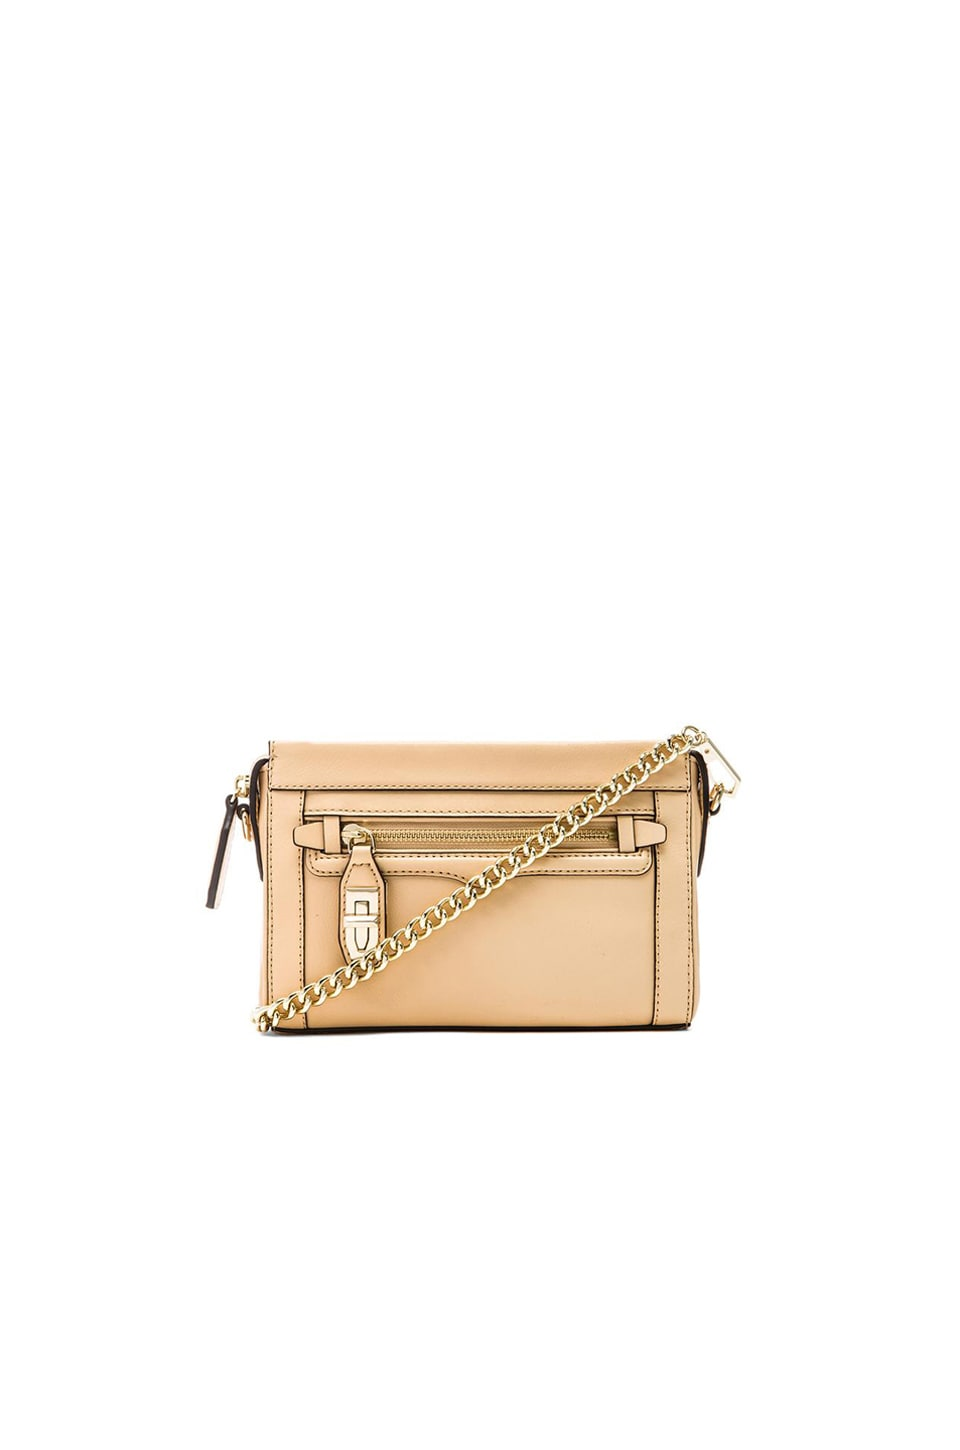 Rebecca Minkoff Mini Crosby Crossbody in Biscuit